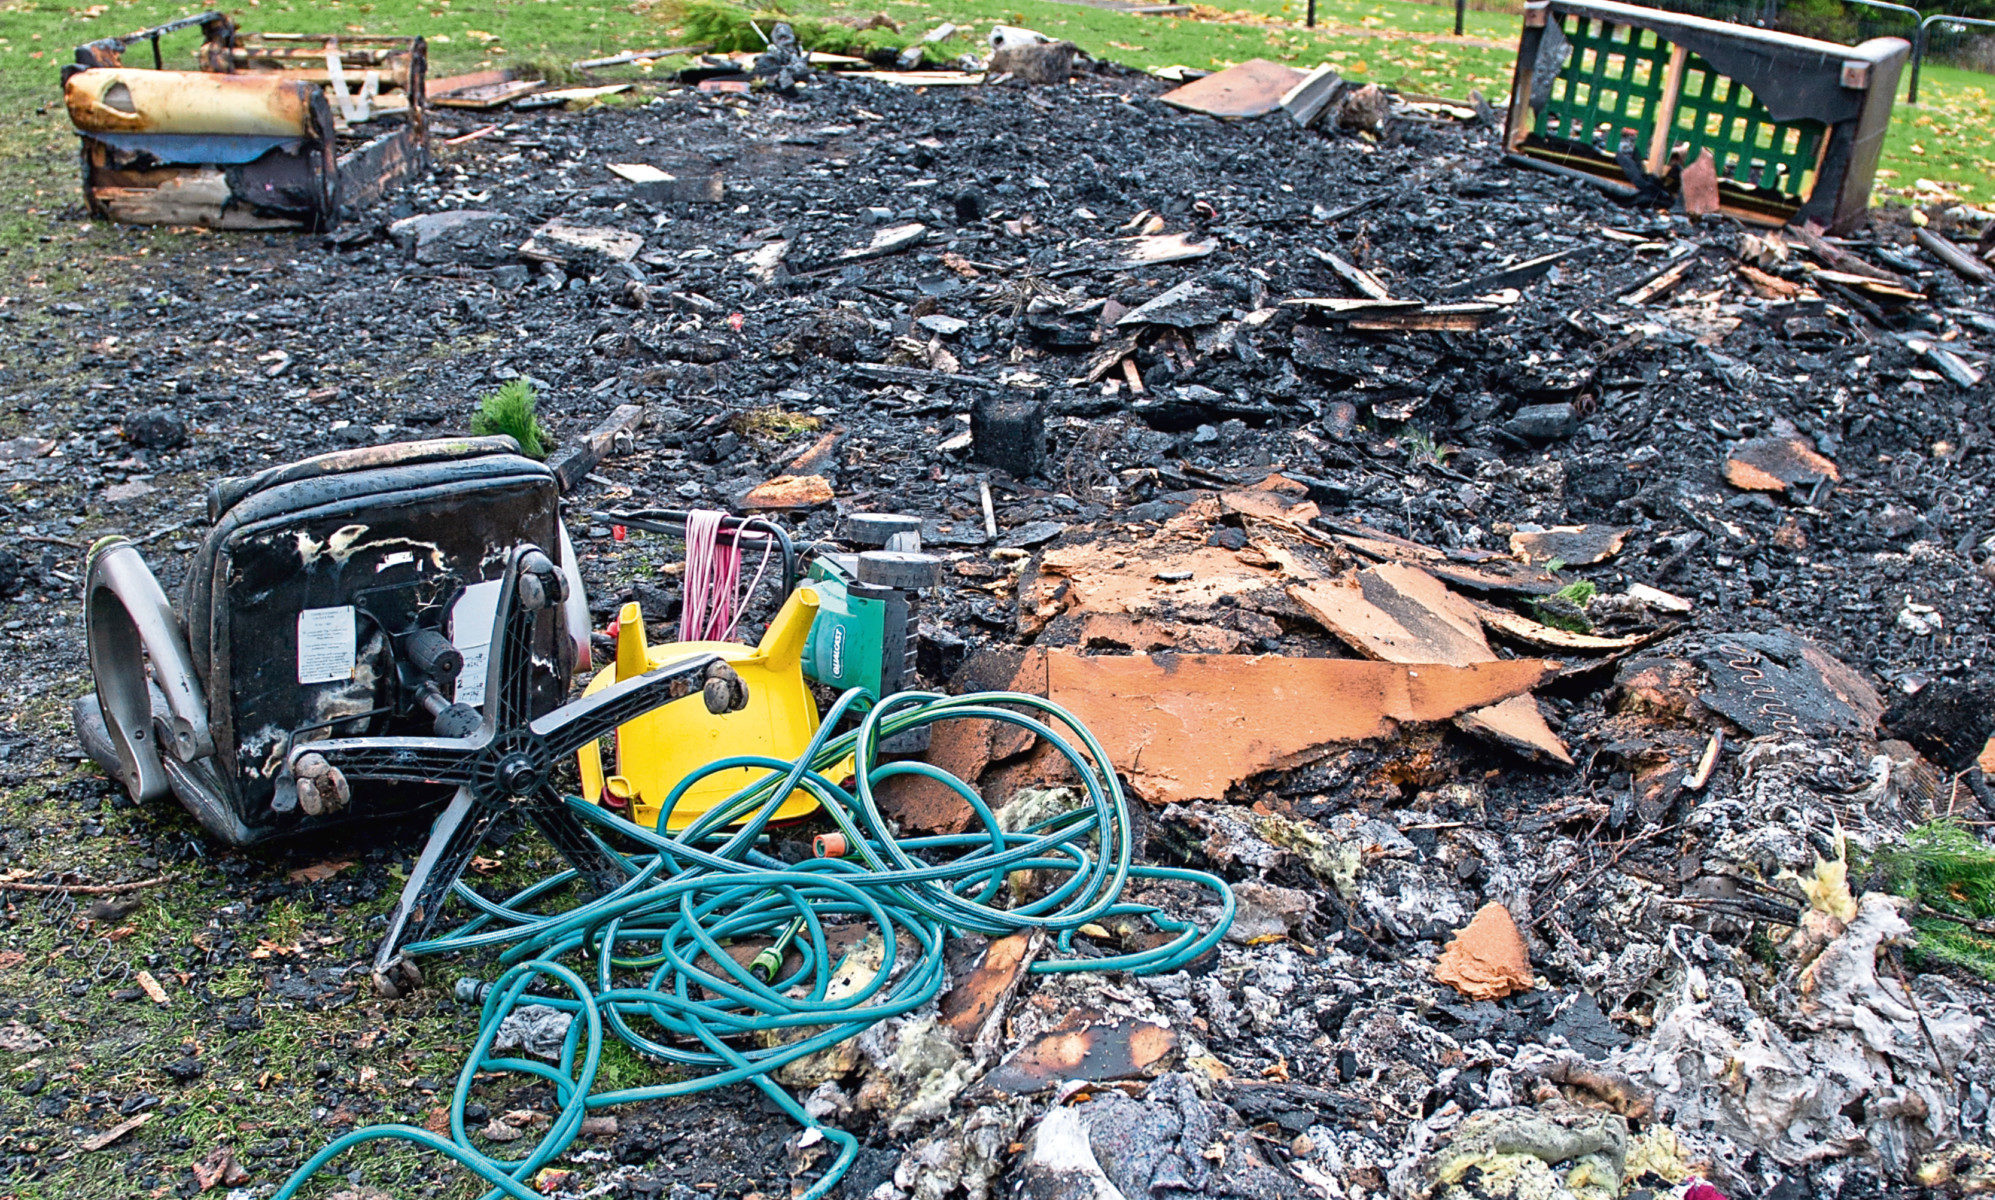 The charred mess and debris left after the bonfire in Kirkton, which firefighters were forced to put out.